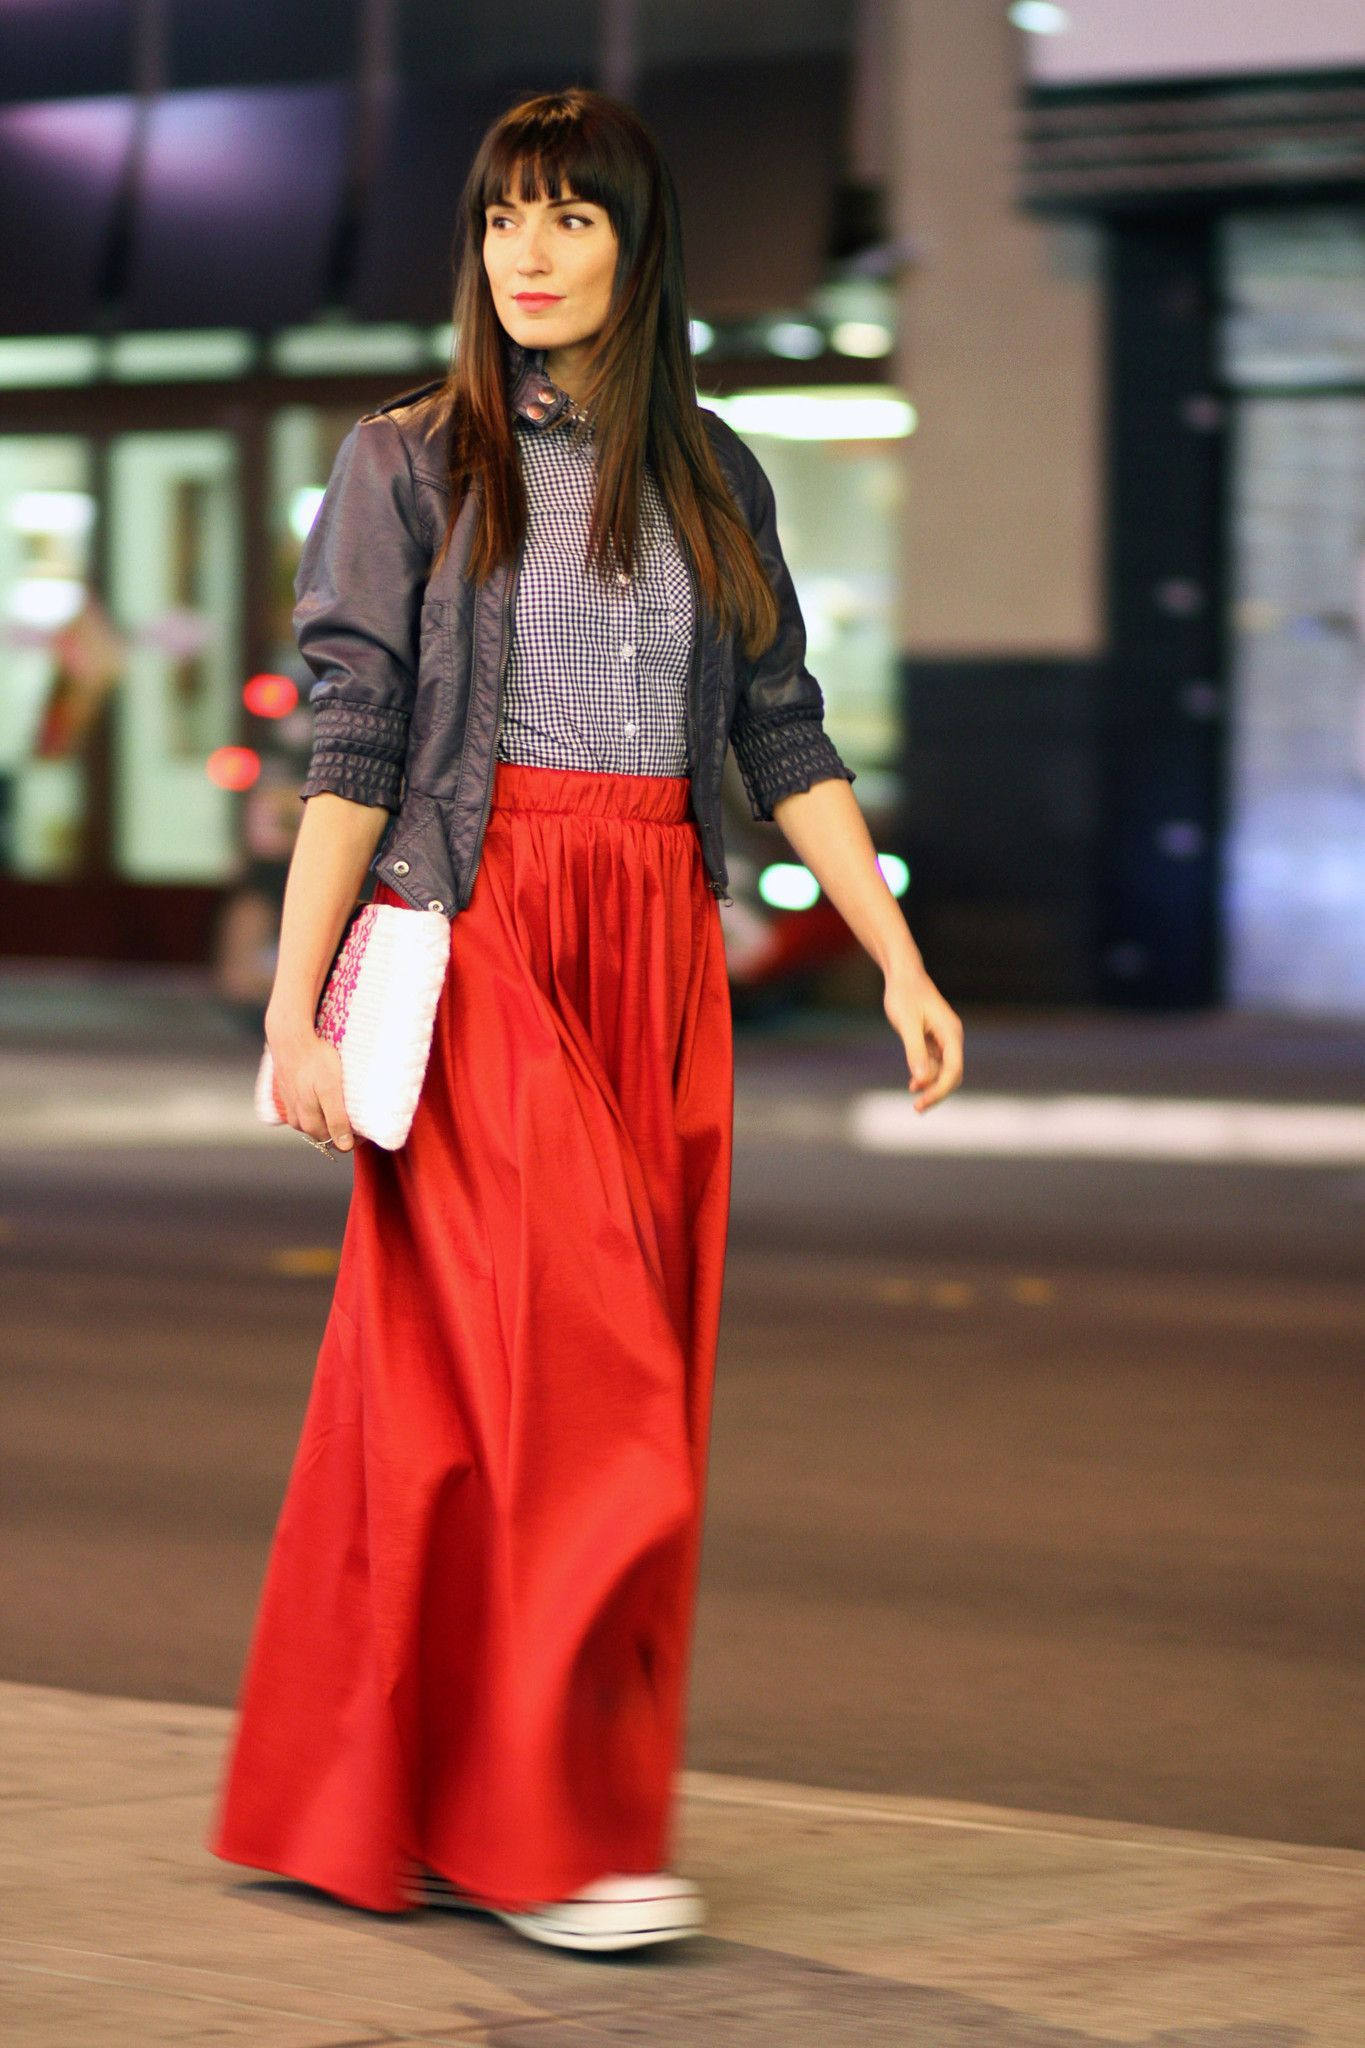 Make a bold statement by wearing red this season style